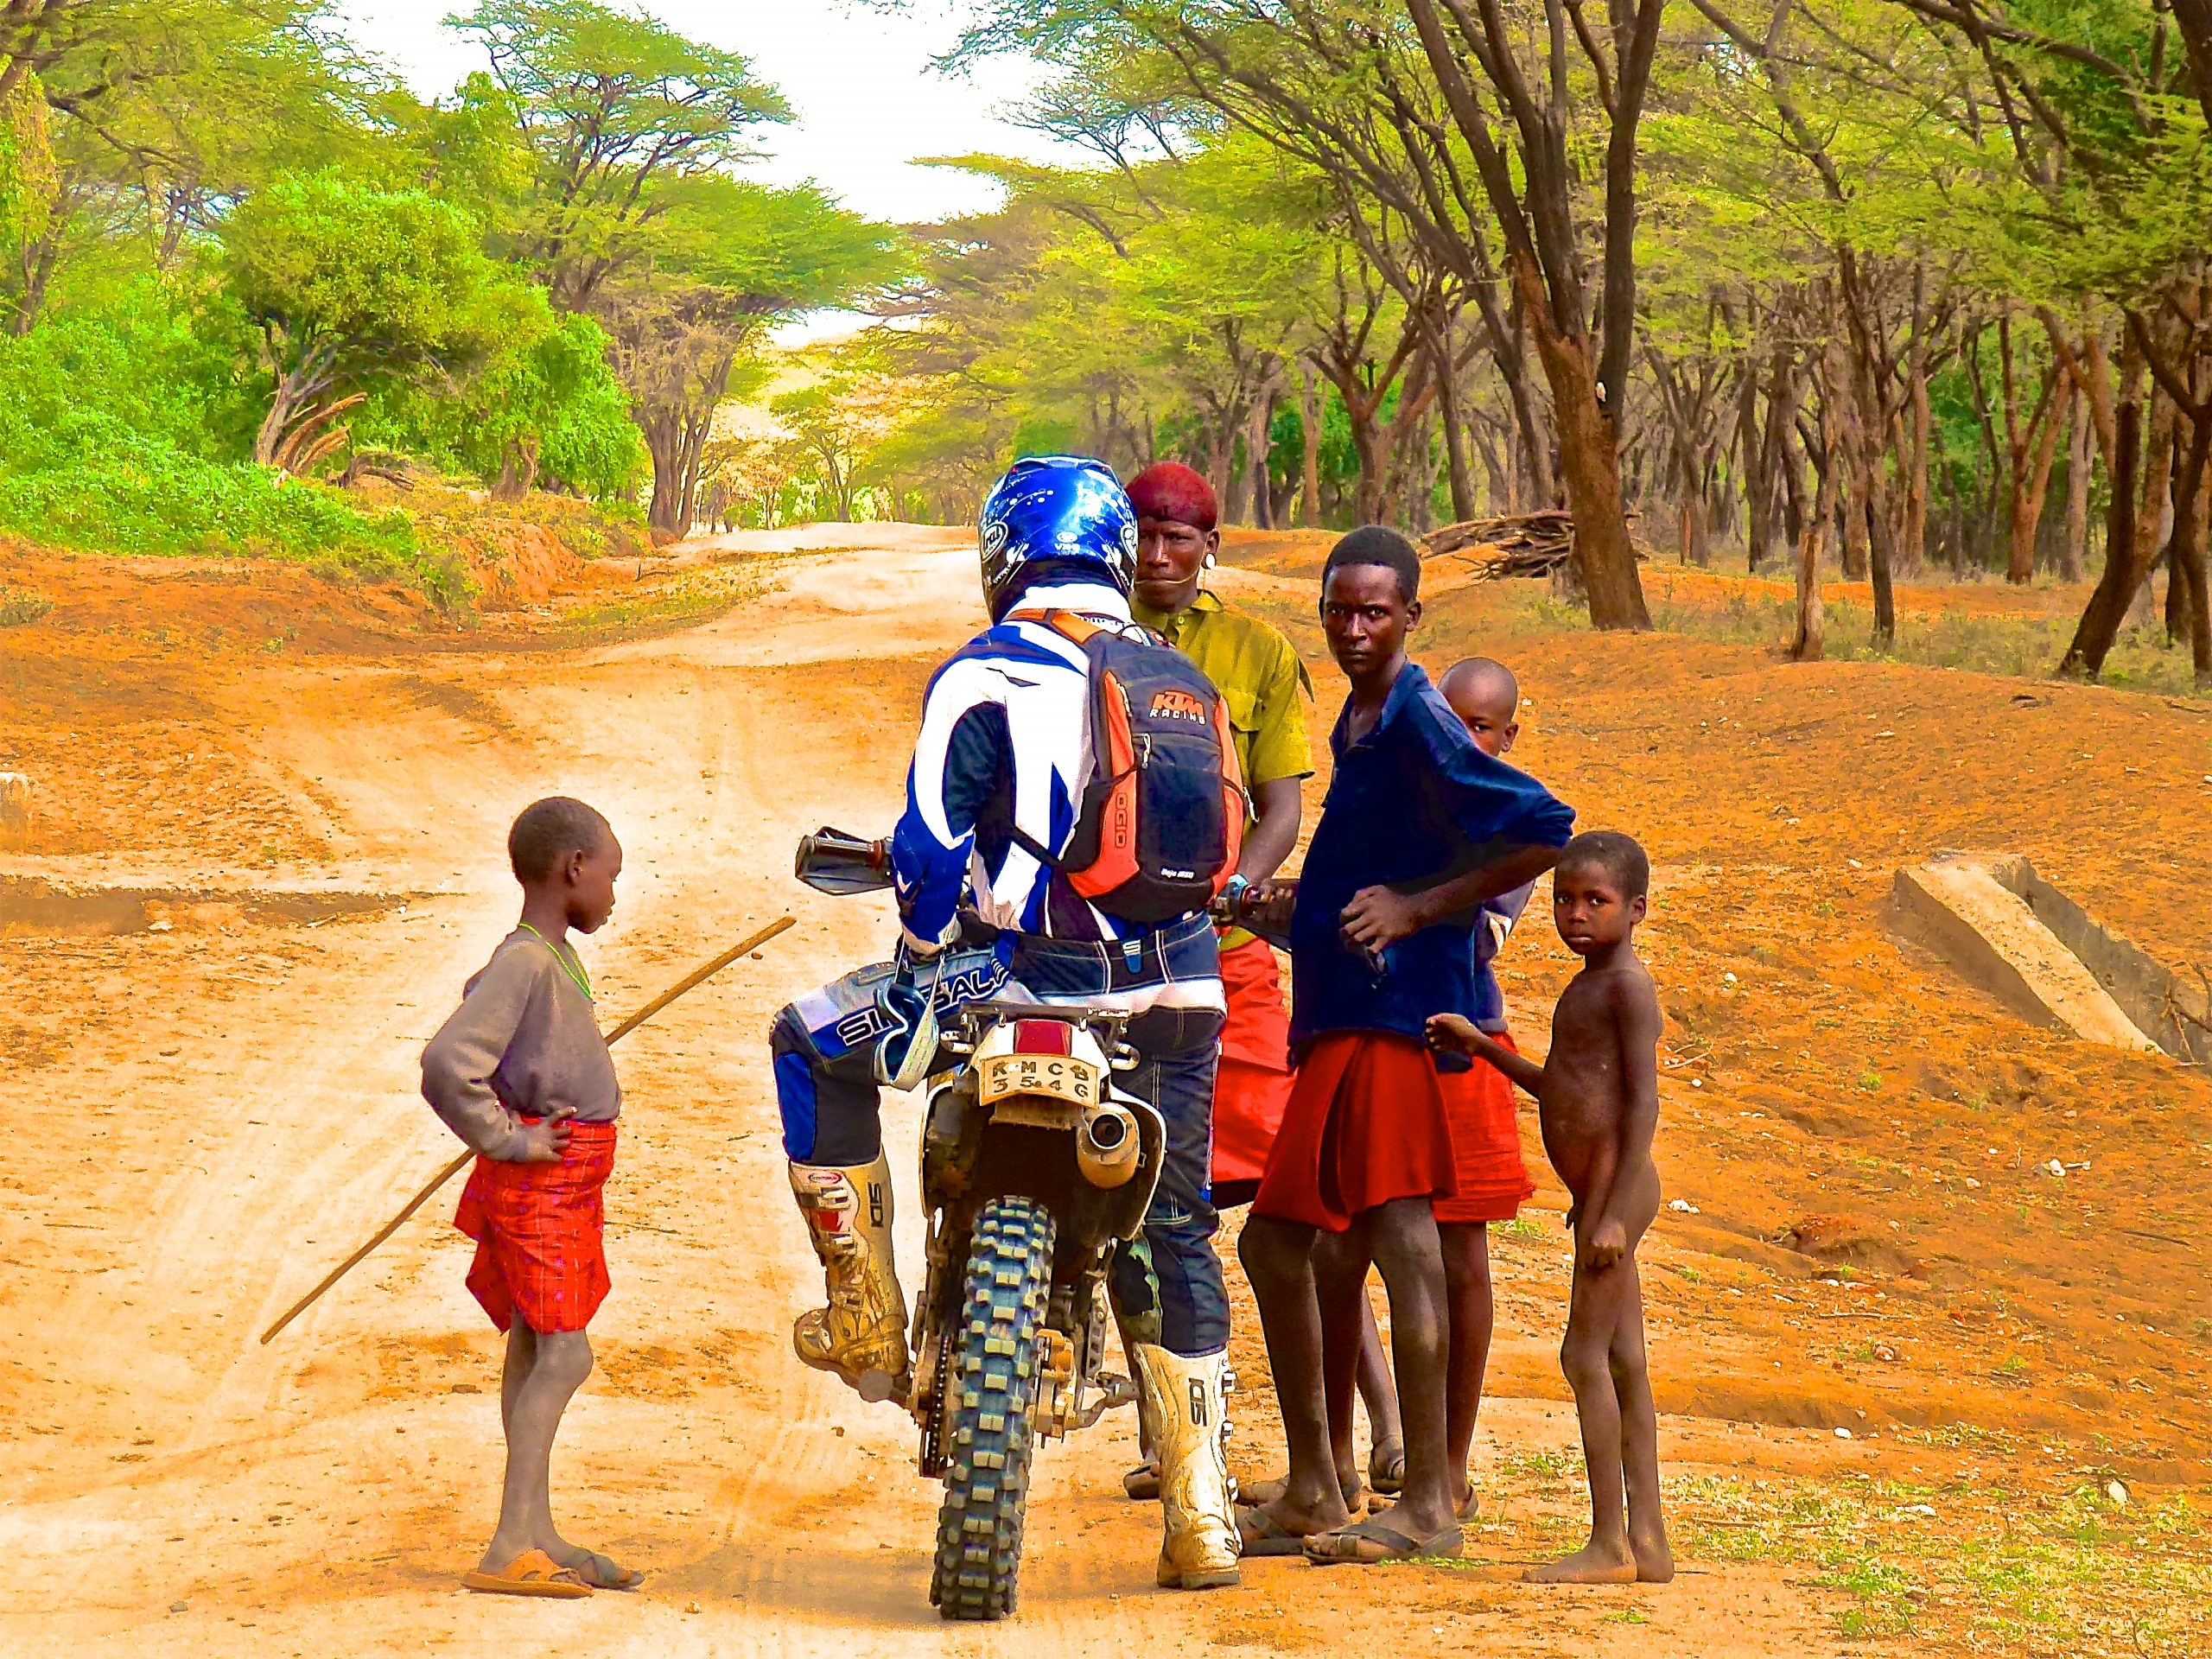 A magnificent tour by motorbike across the best corners of South Kenya